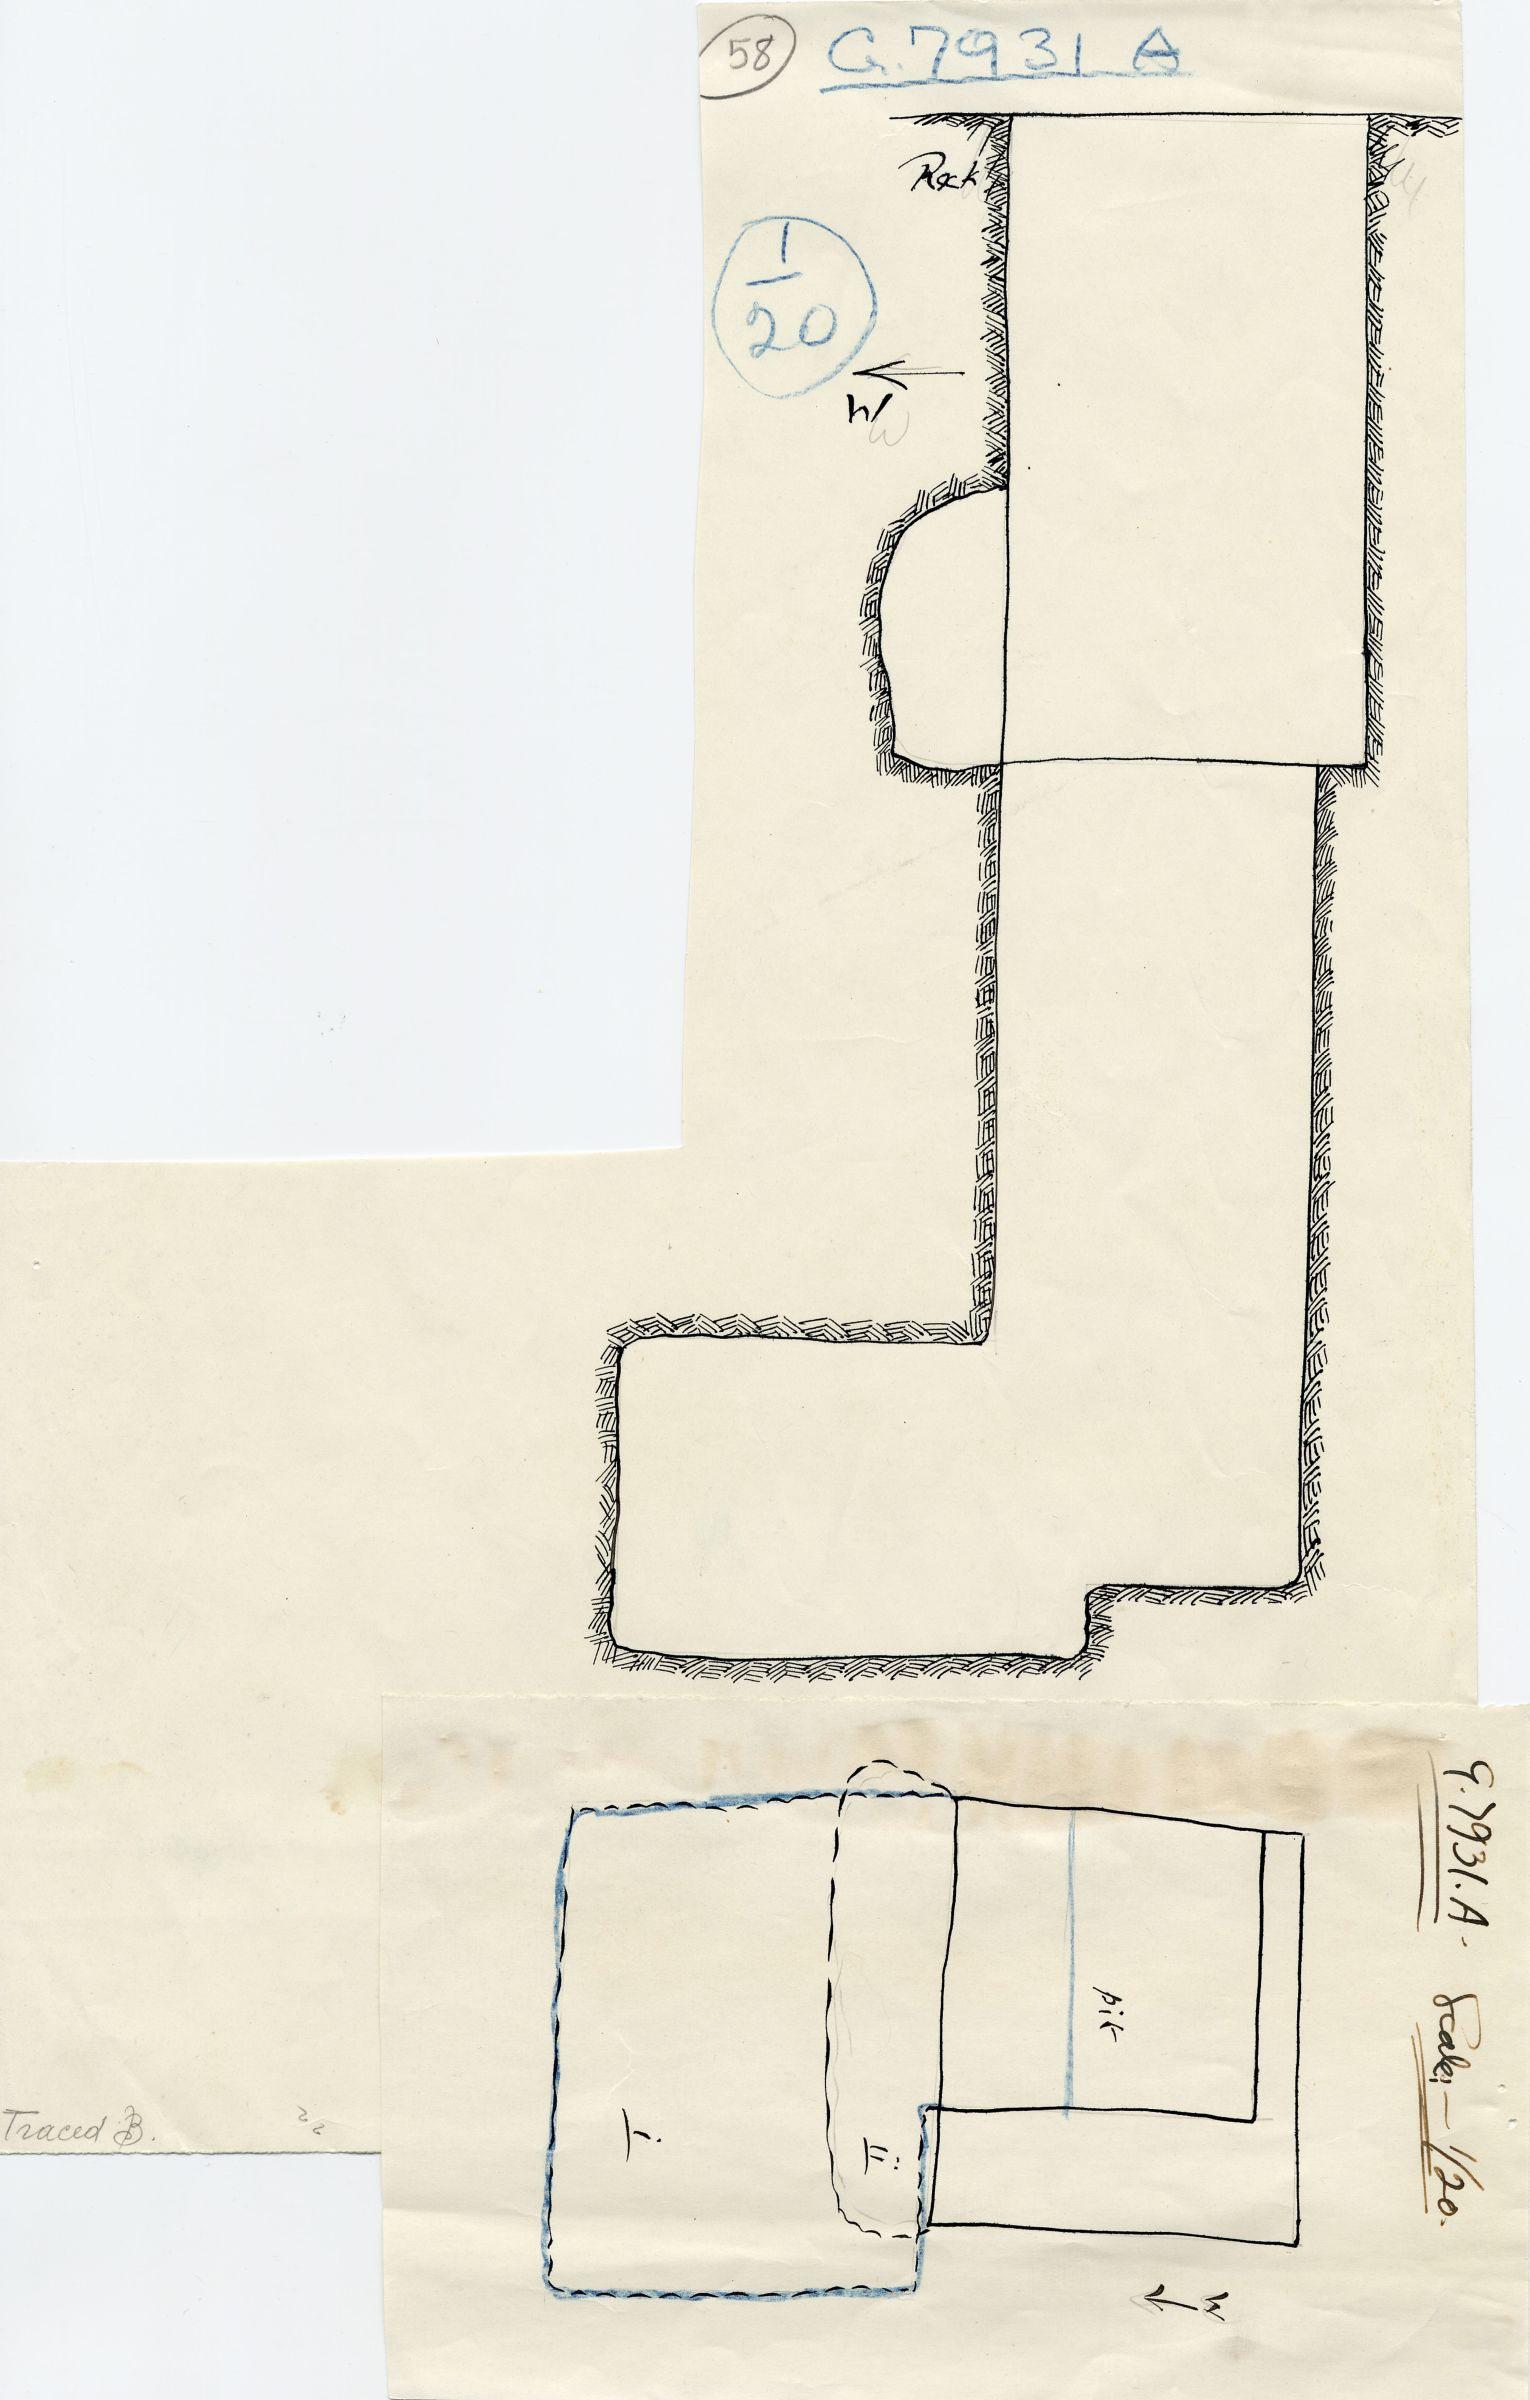 Maps and plans: G 7931a, Shaft A